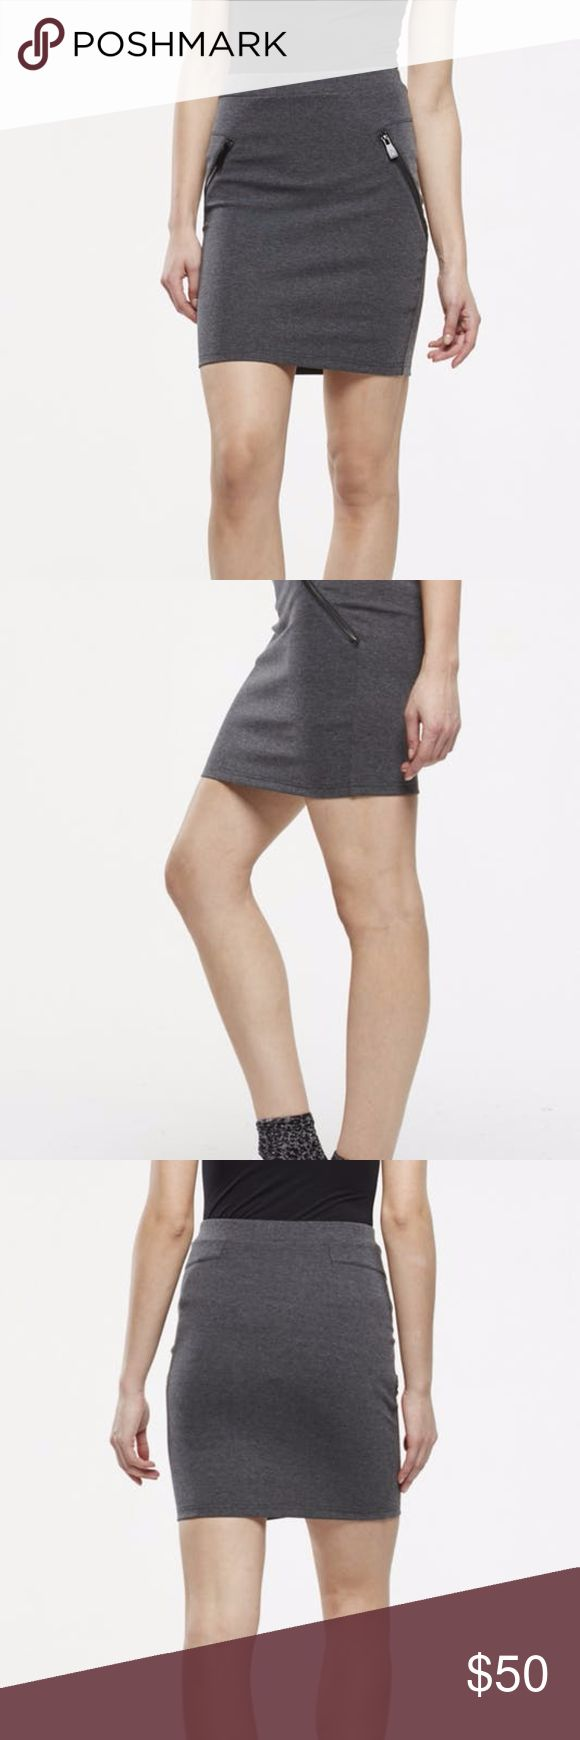 Eleven Paris Gray Knit Skirt Knit skirt perfect to dress up or down in heels and flats! Eleven Paris Skirts Mini